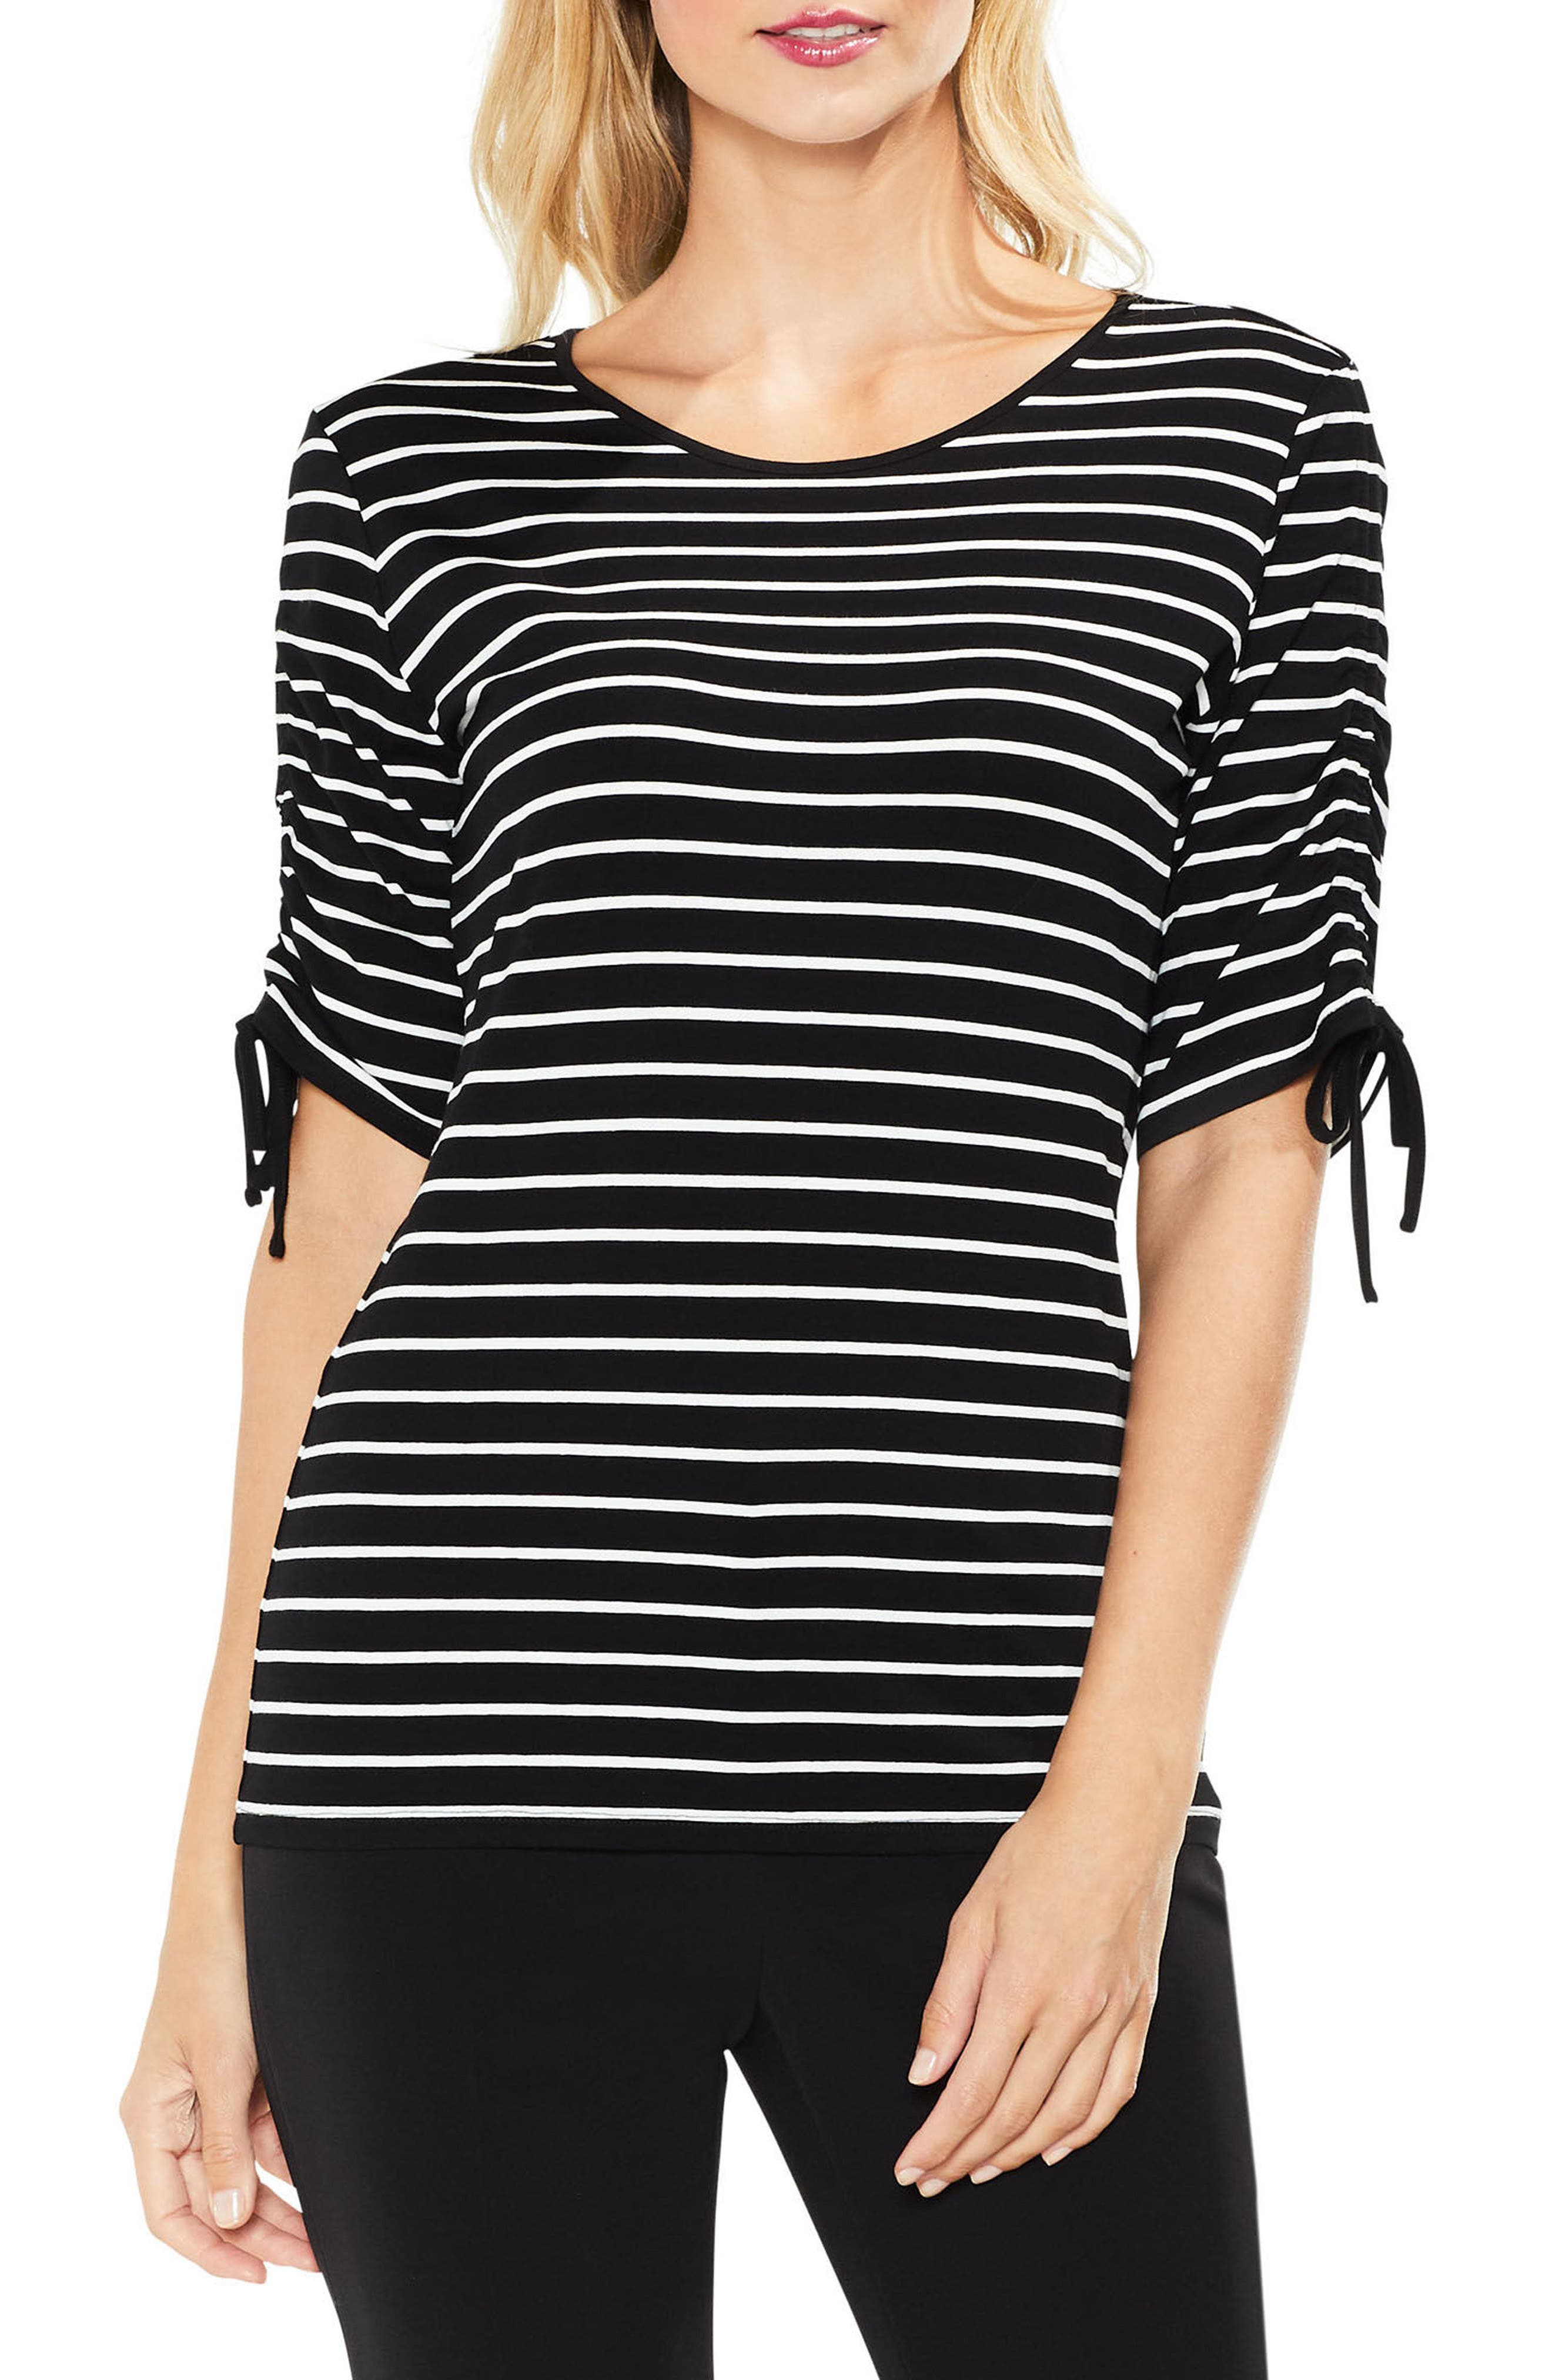 Main Image - Vince Camuto Drawstring Sleeve Stripe Top